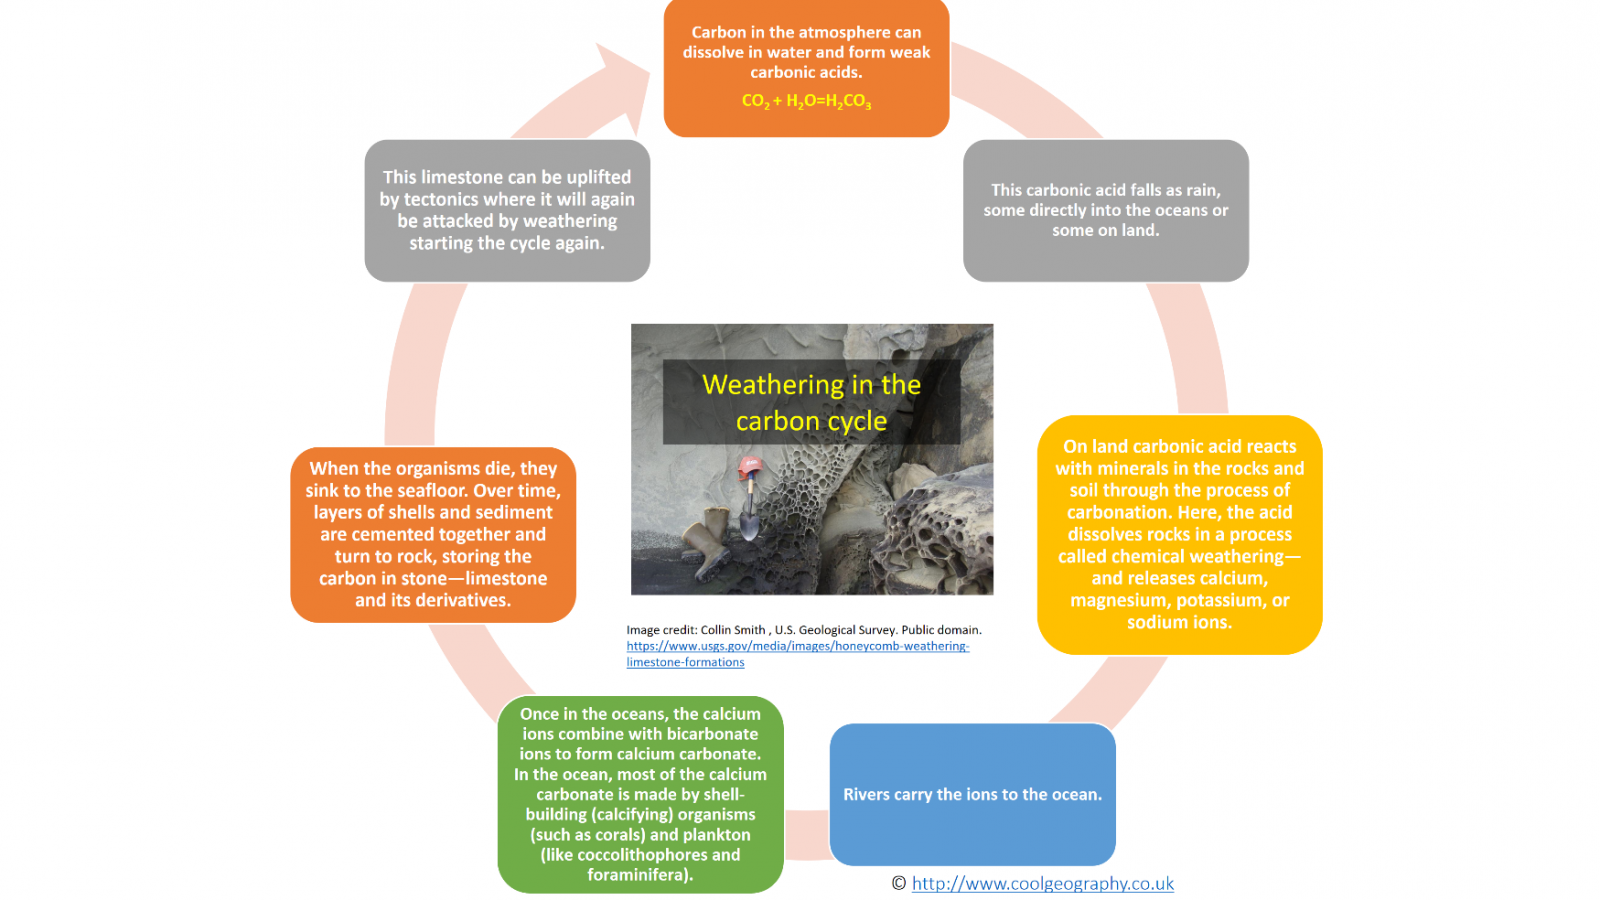 Weathering in the carbon cycle